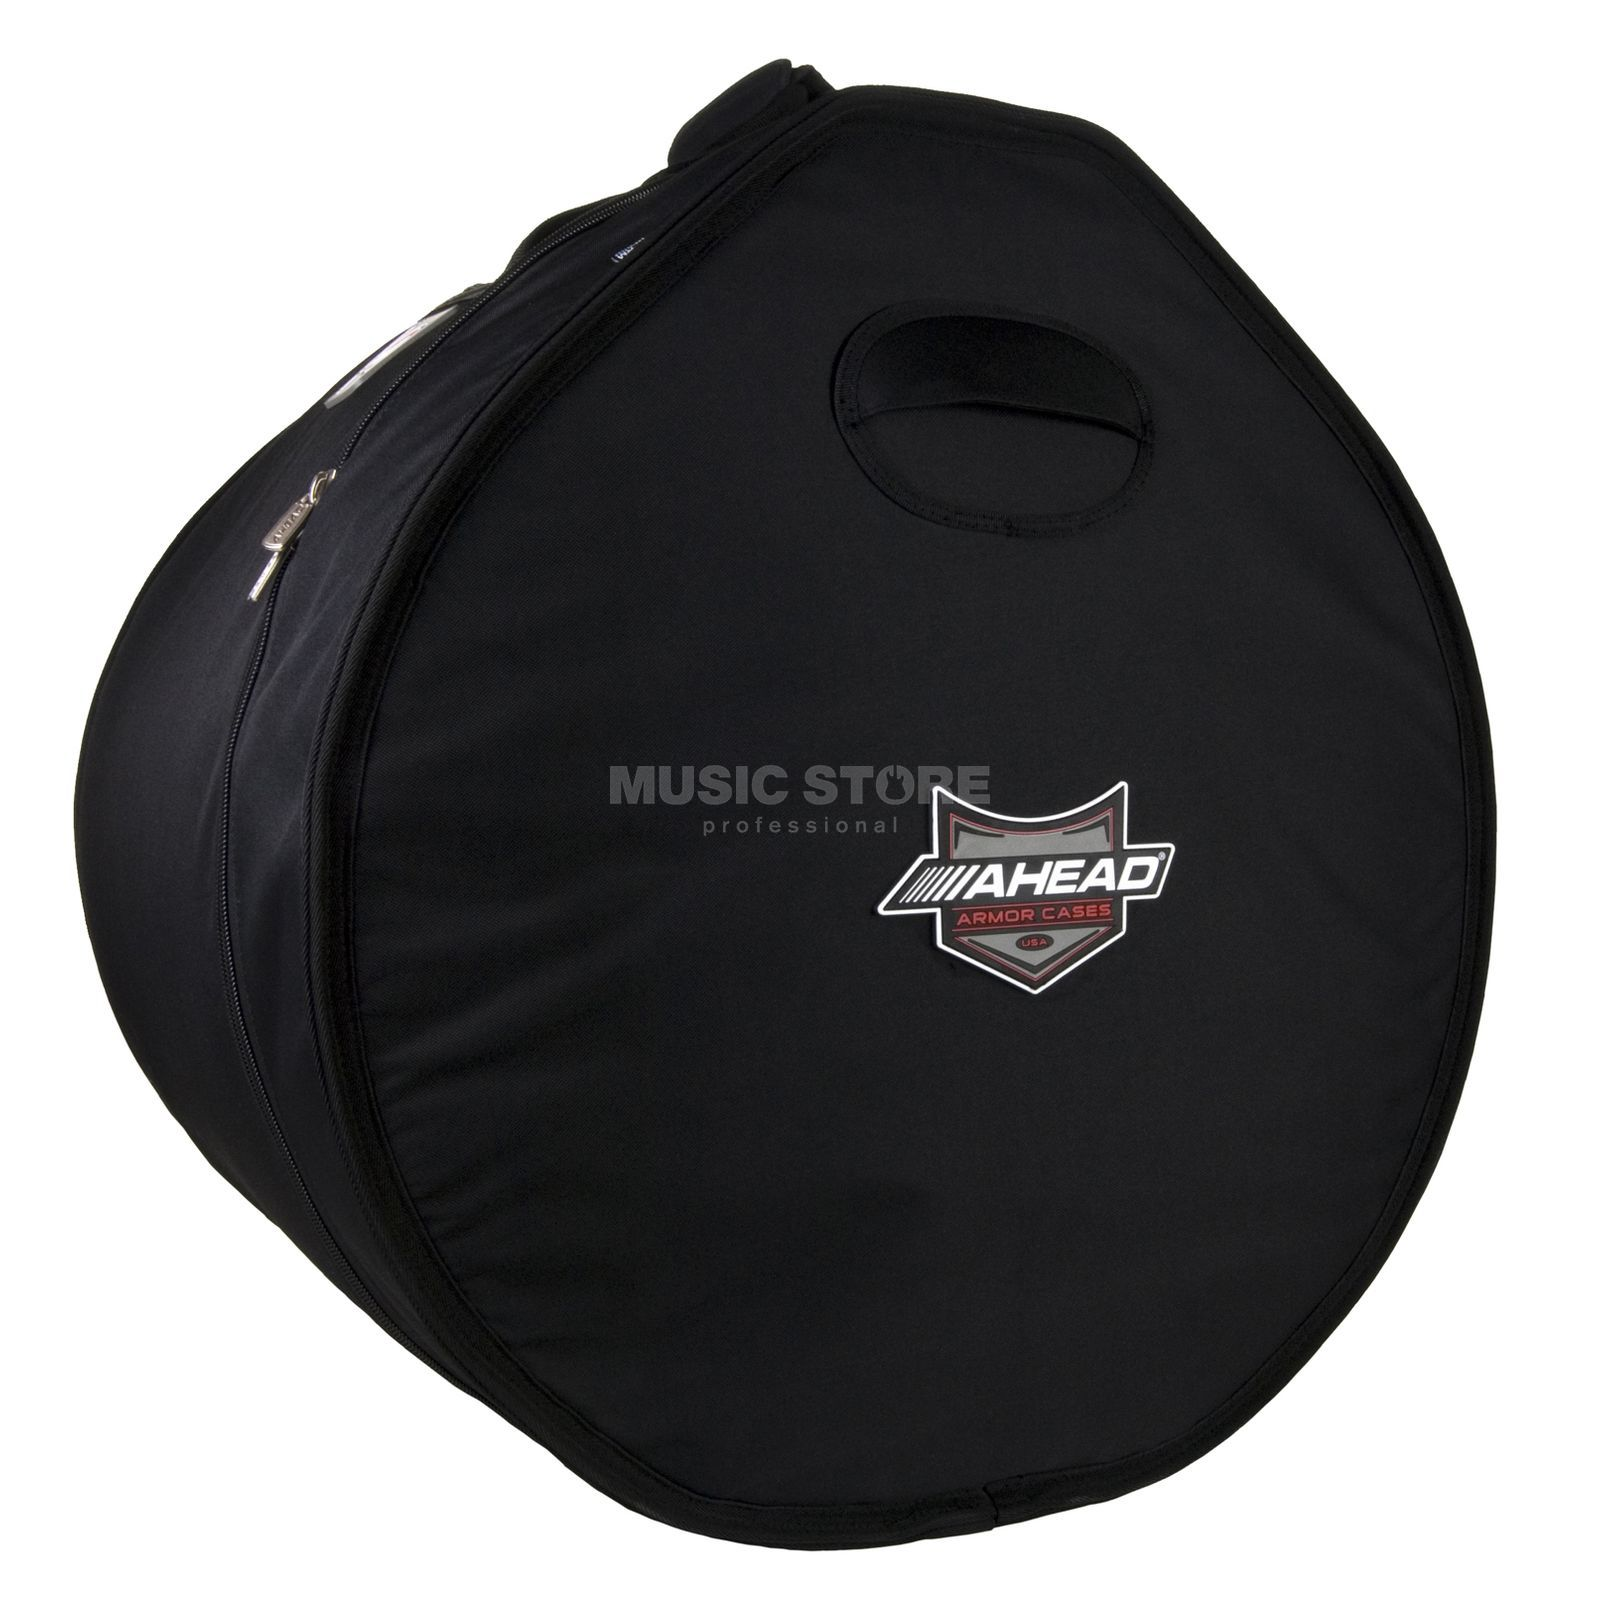 "Ahead Armor Cases BassDrum Bag 20""x18""  Produktbild"